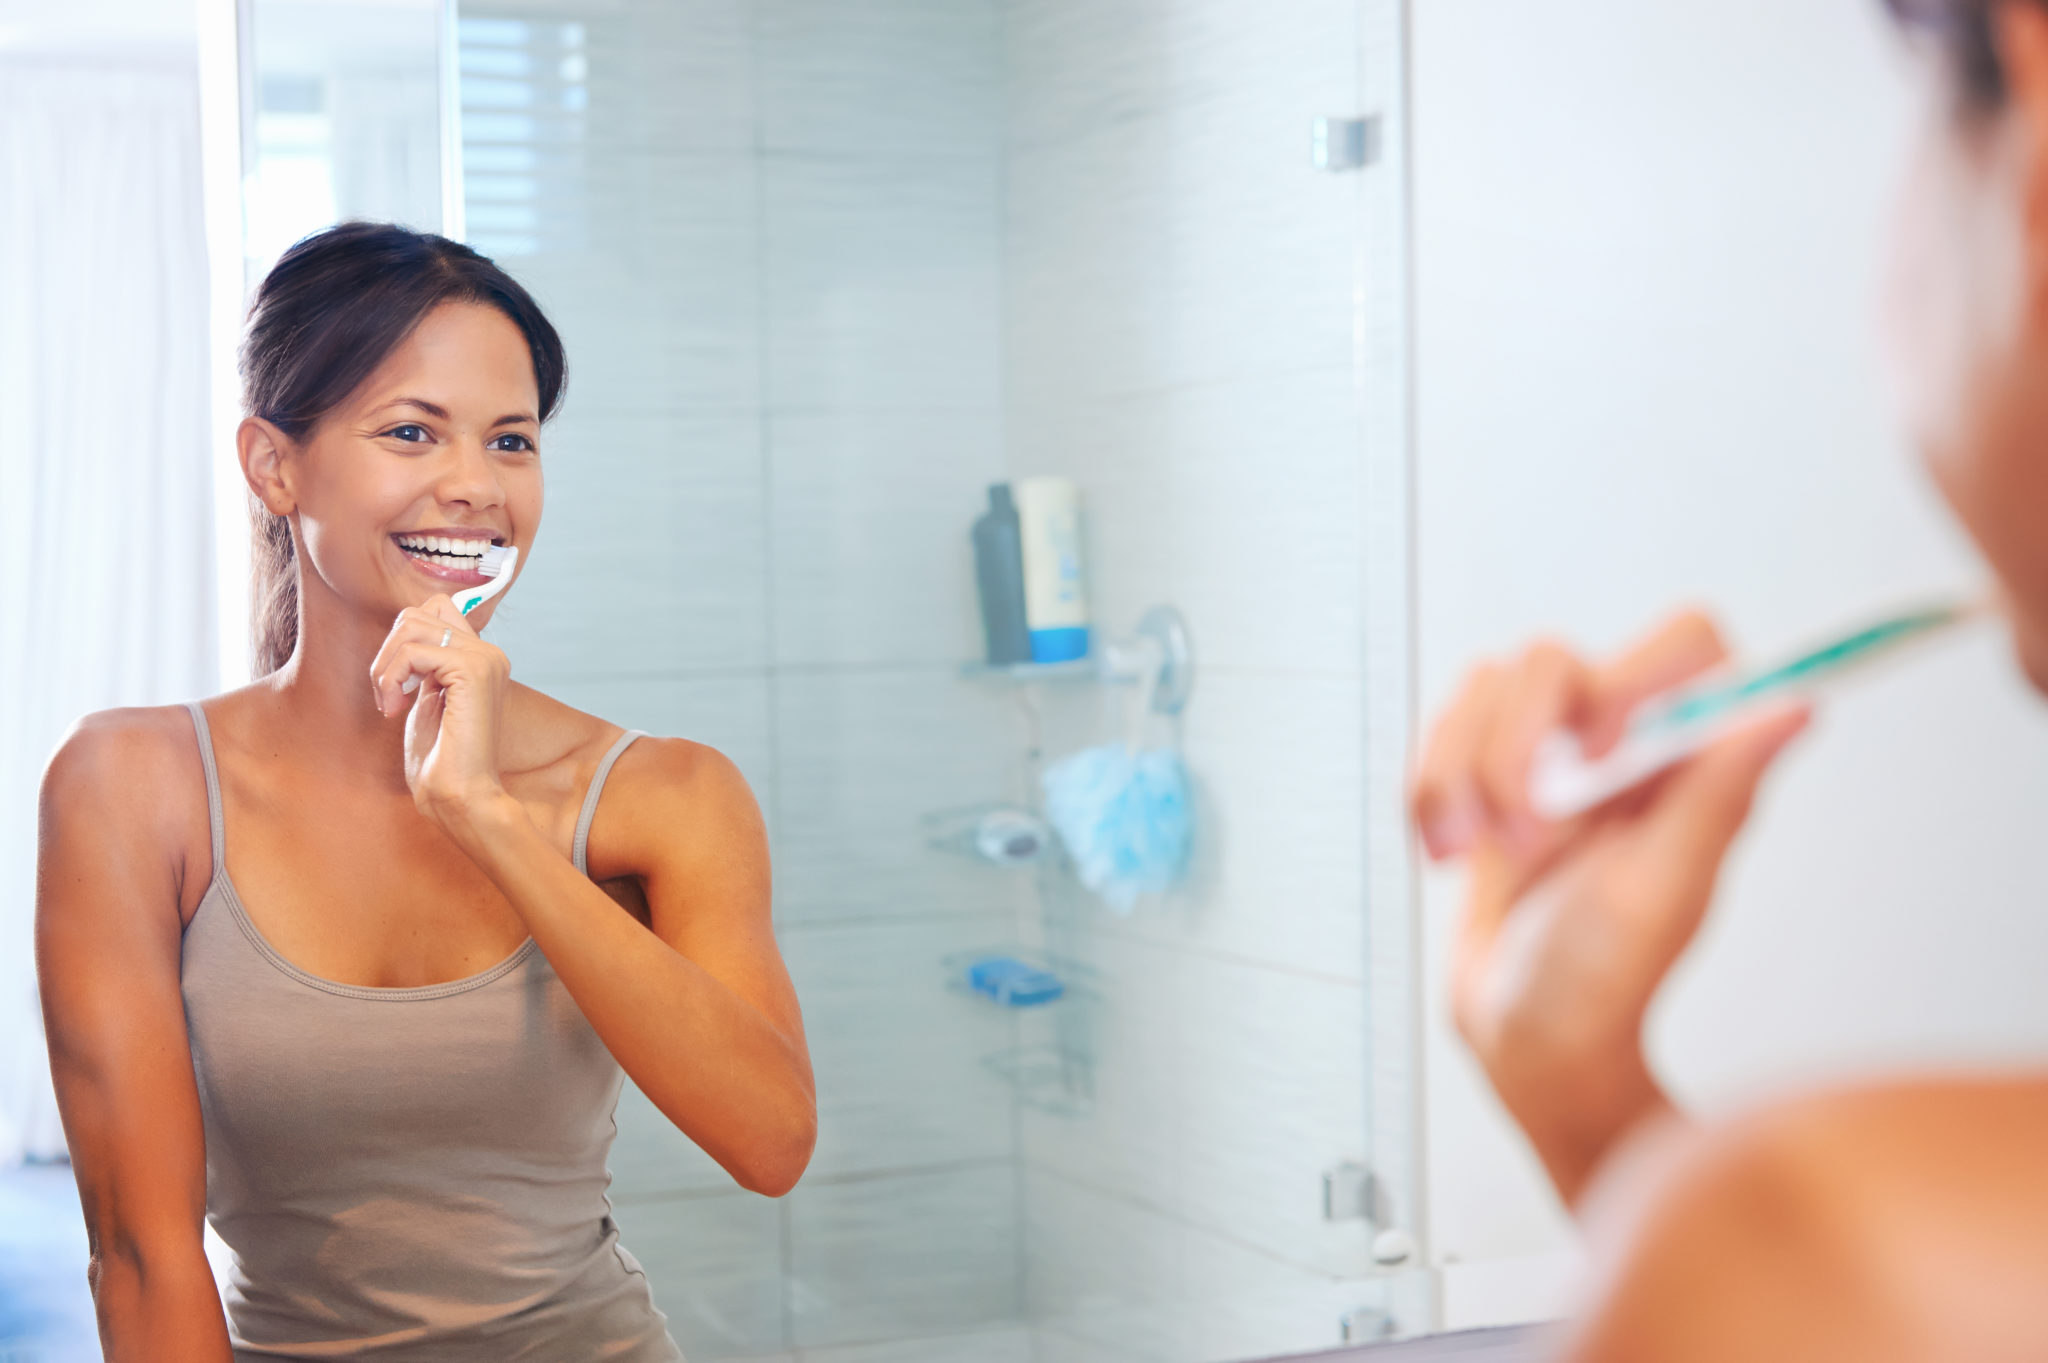 Image of a woman brushing her teeth.